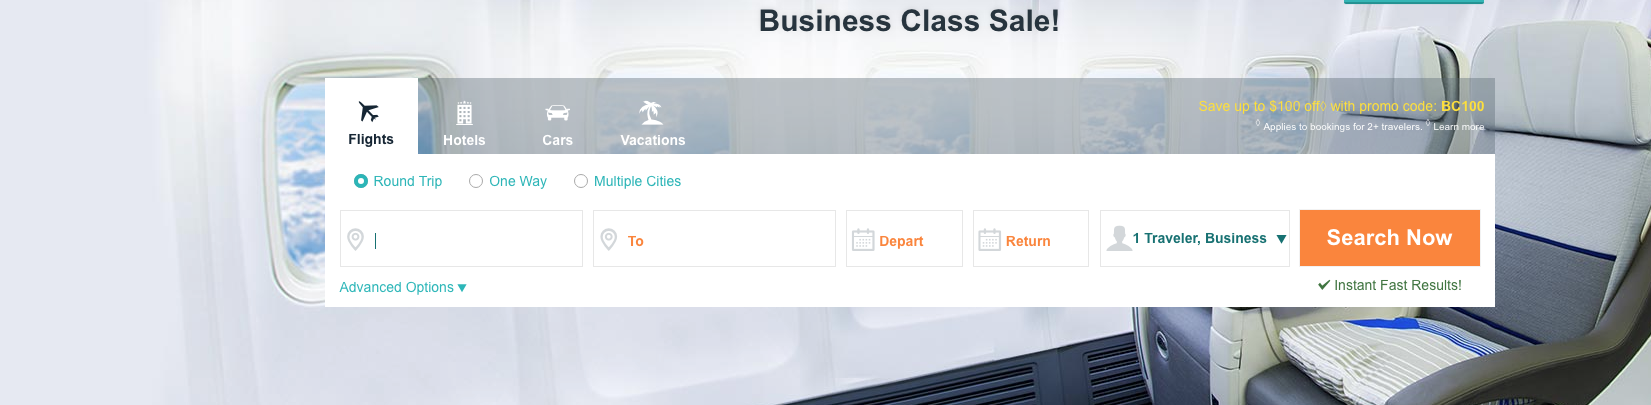 Business-class-deal